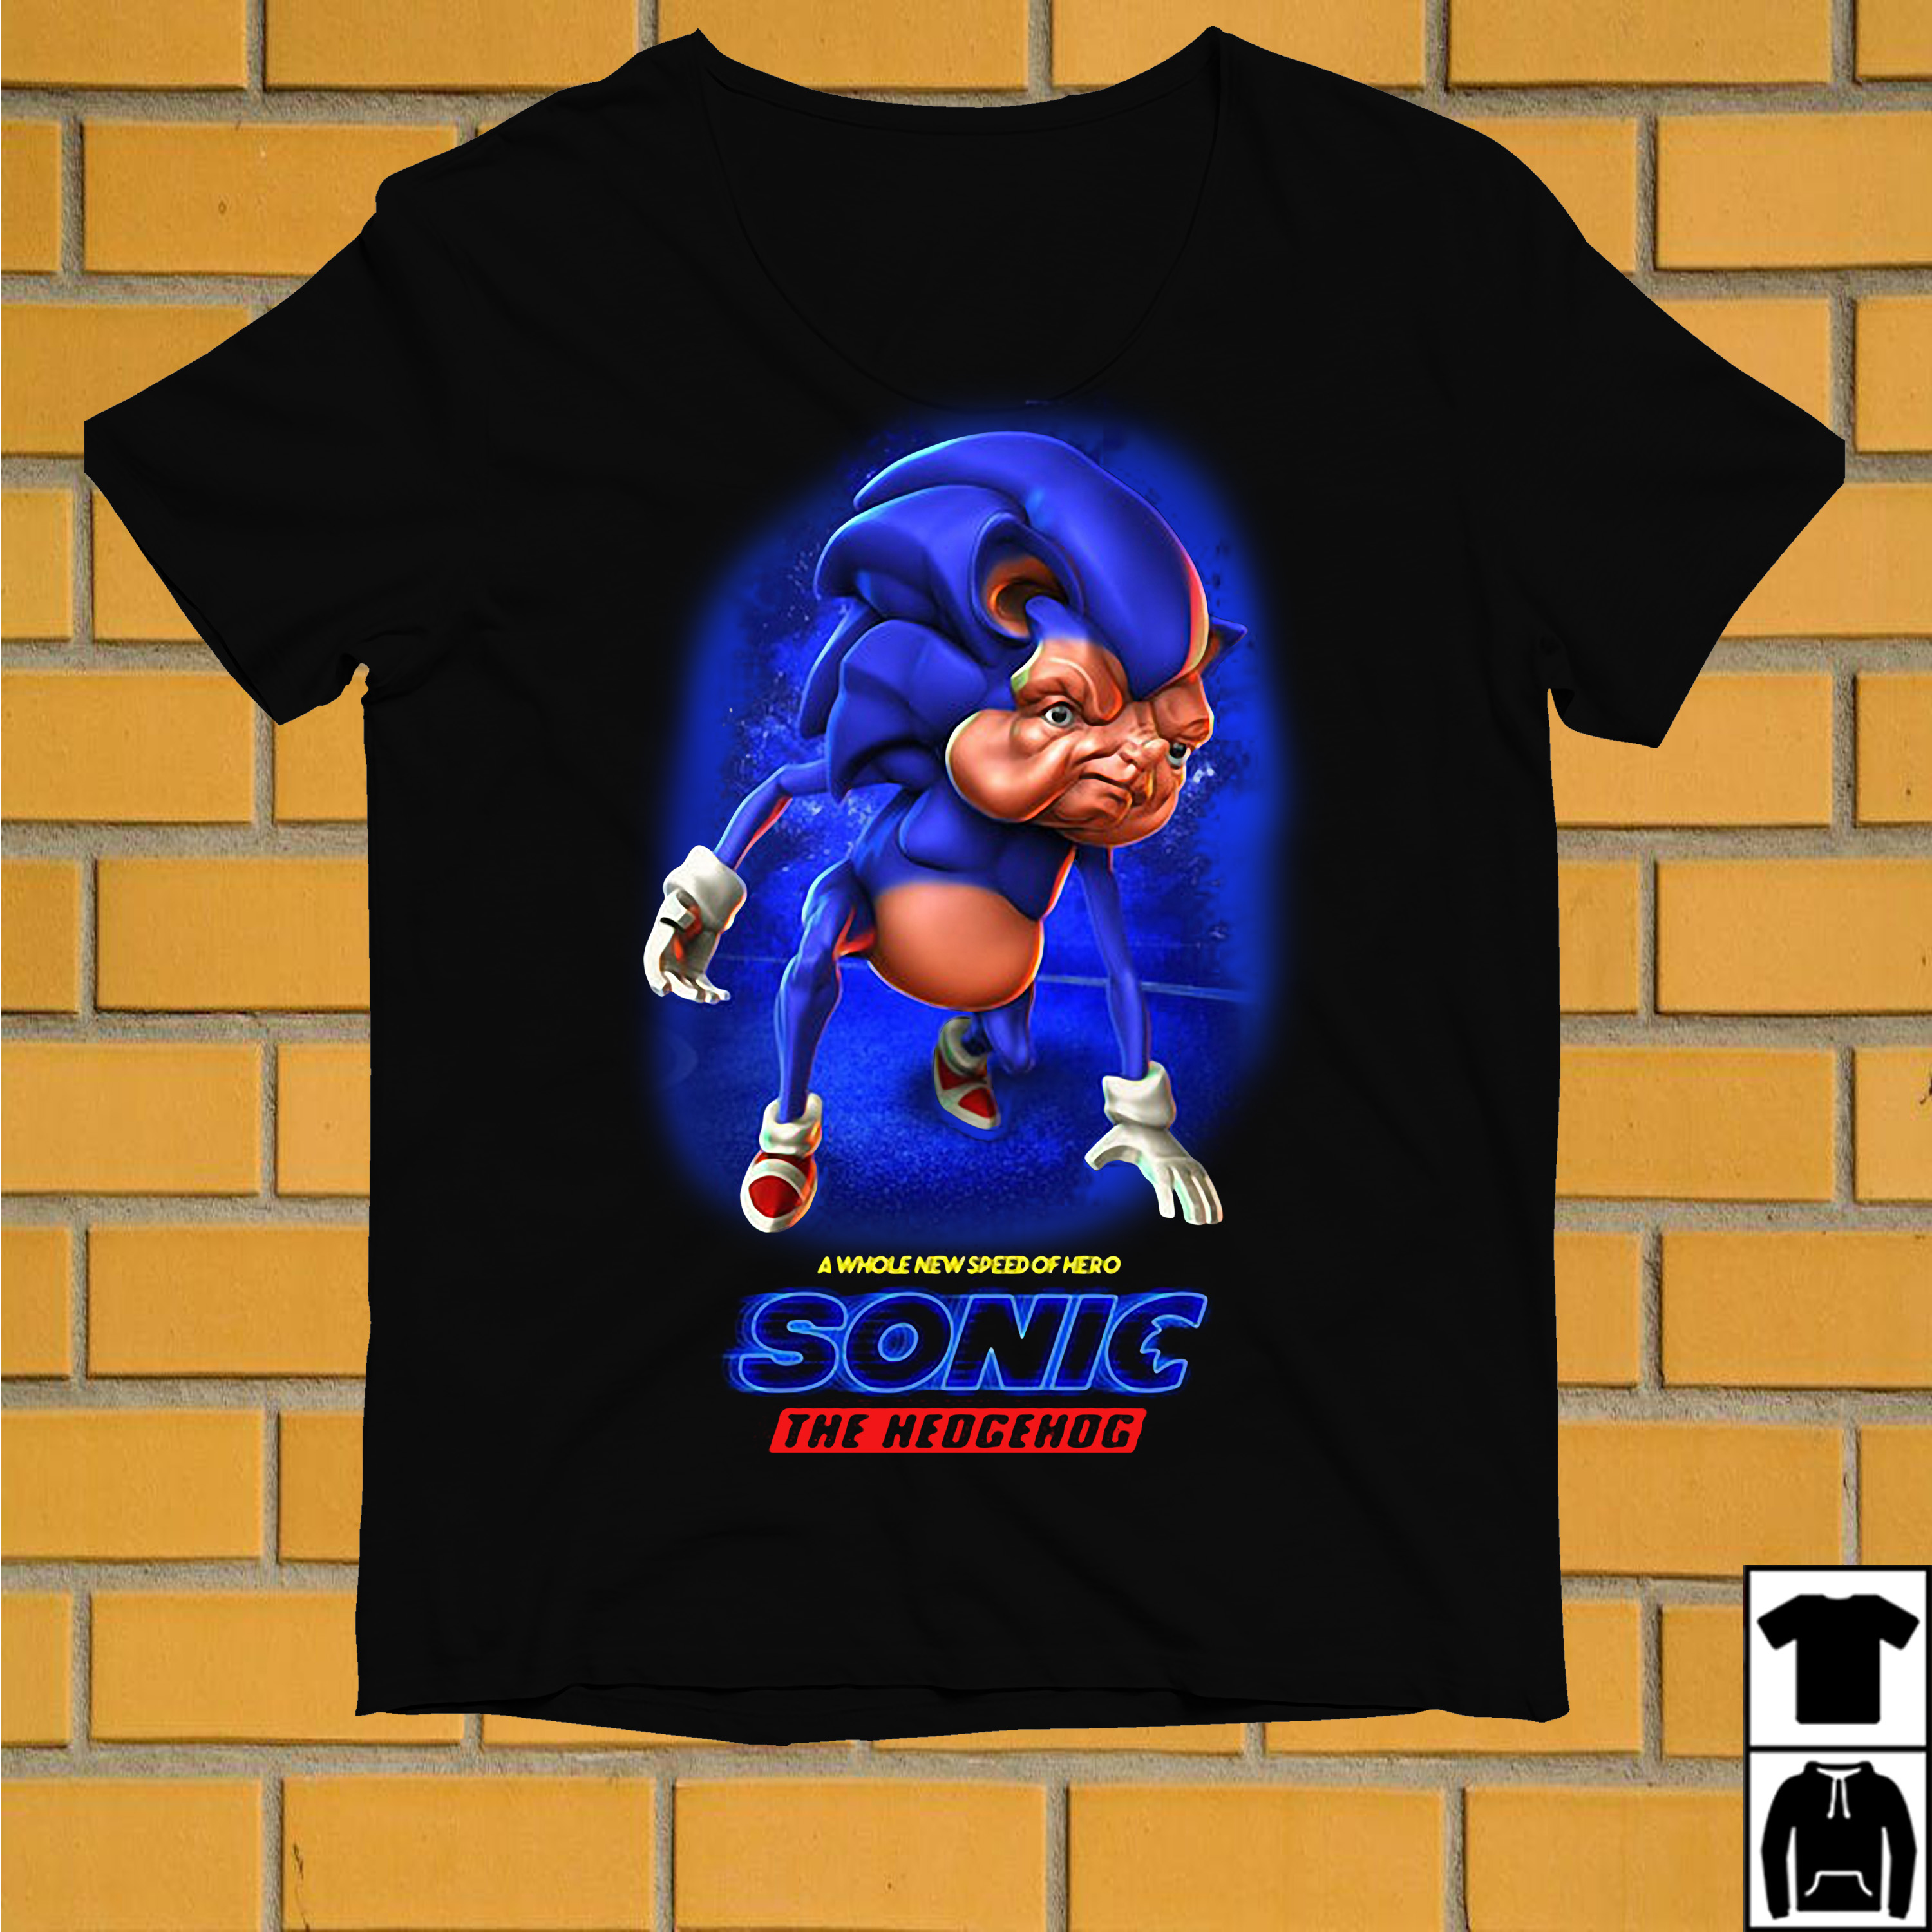 A whole new speed of hero Sonic the hedgehog shirt